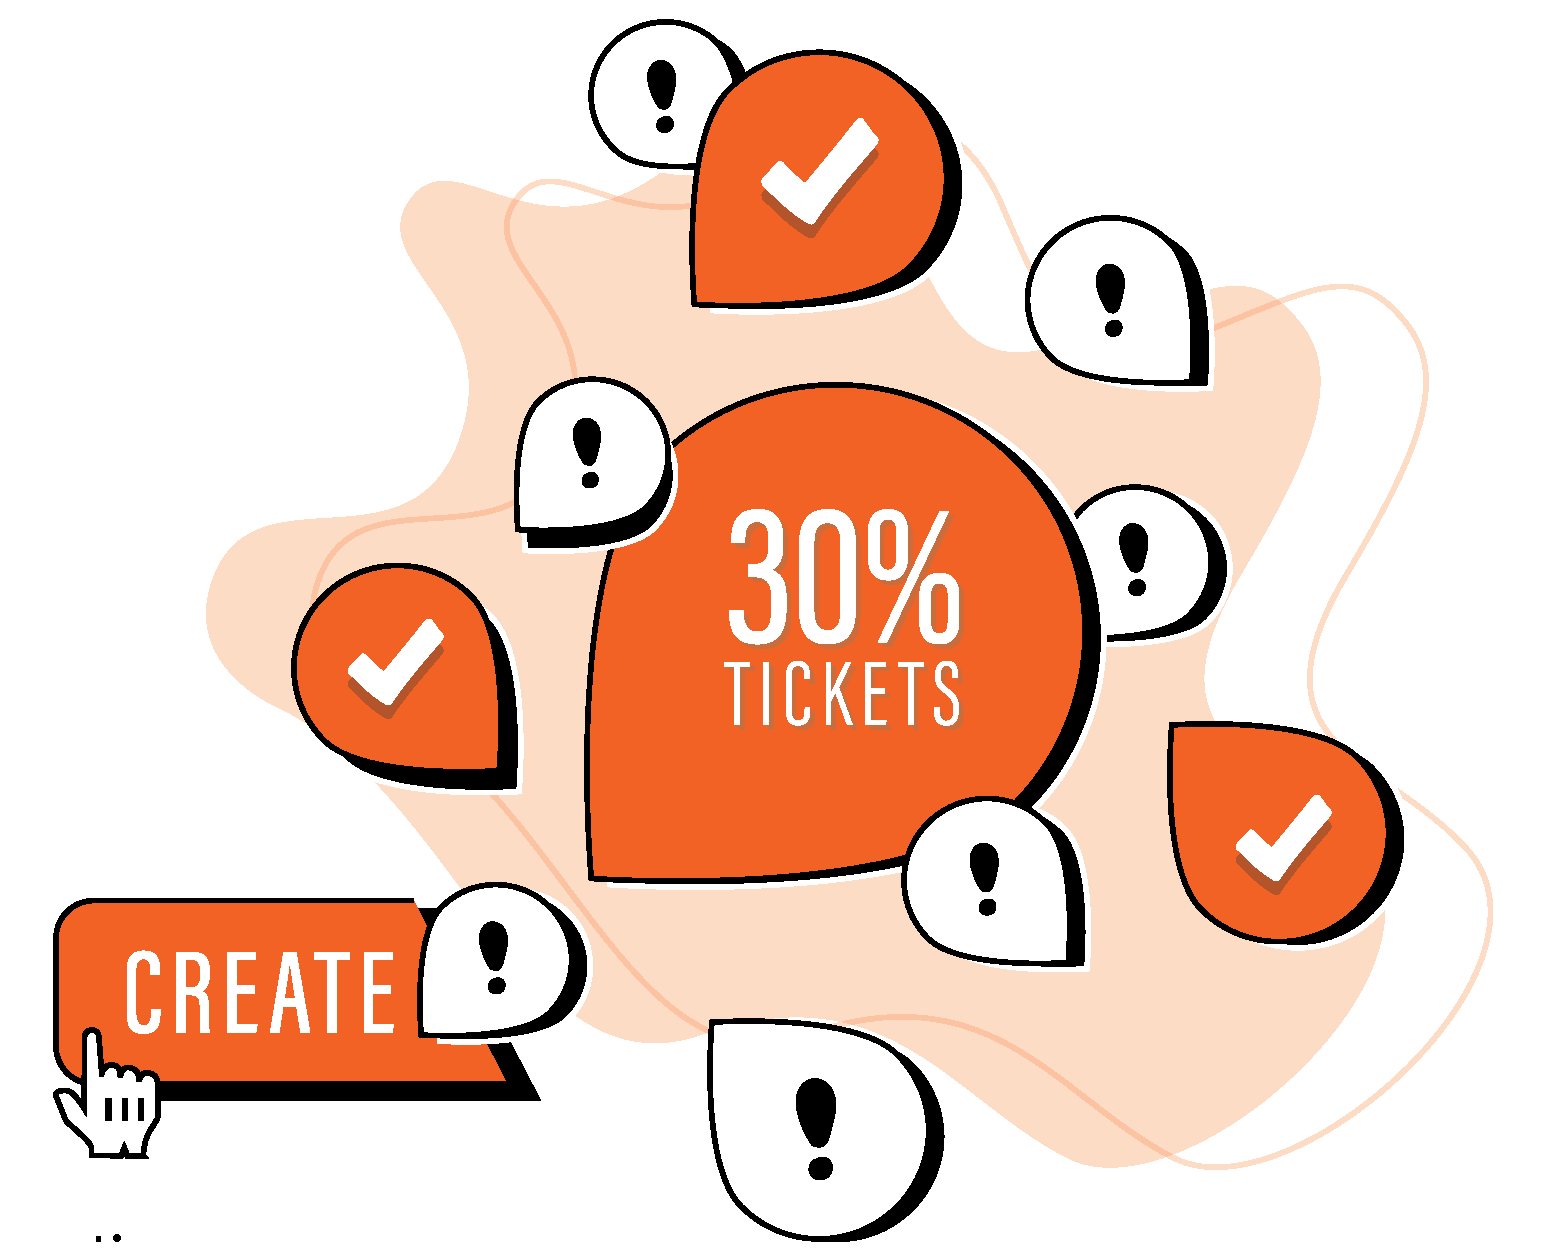 Create 30% tickets graphic